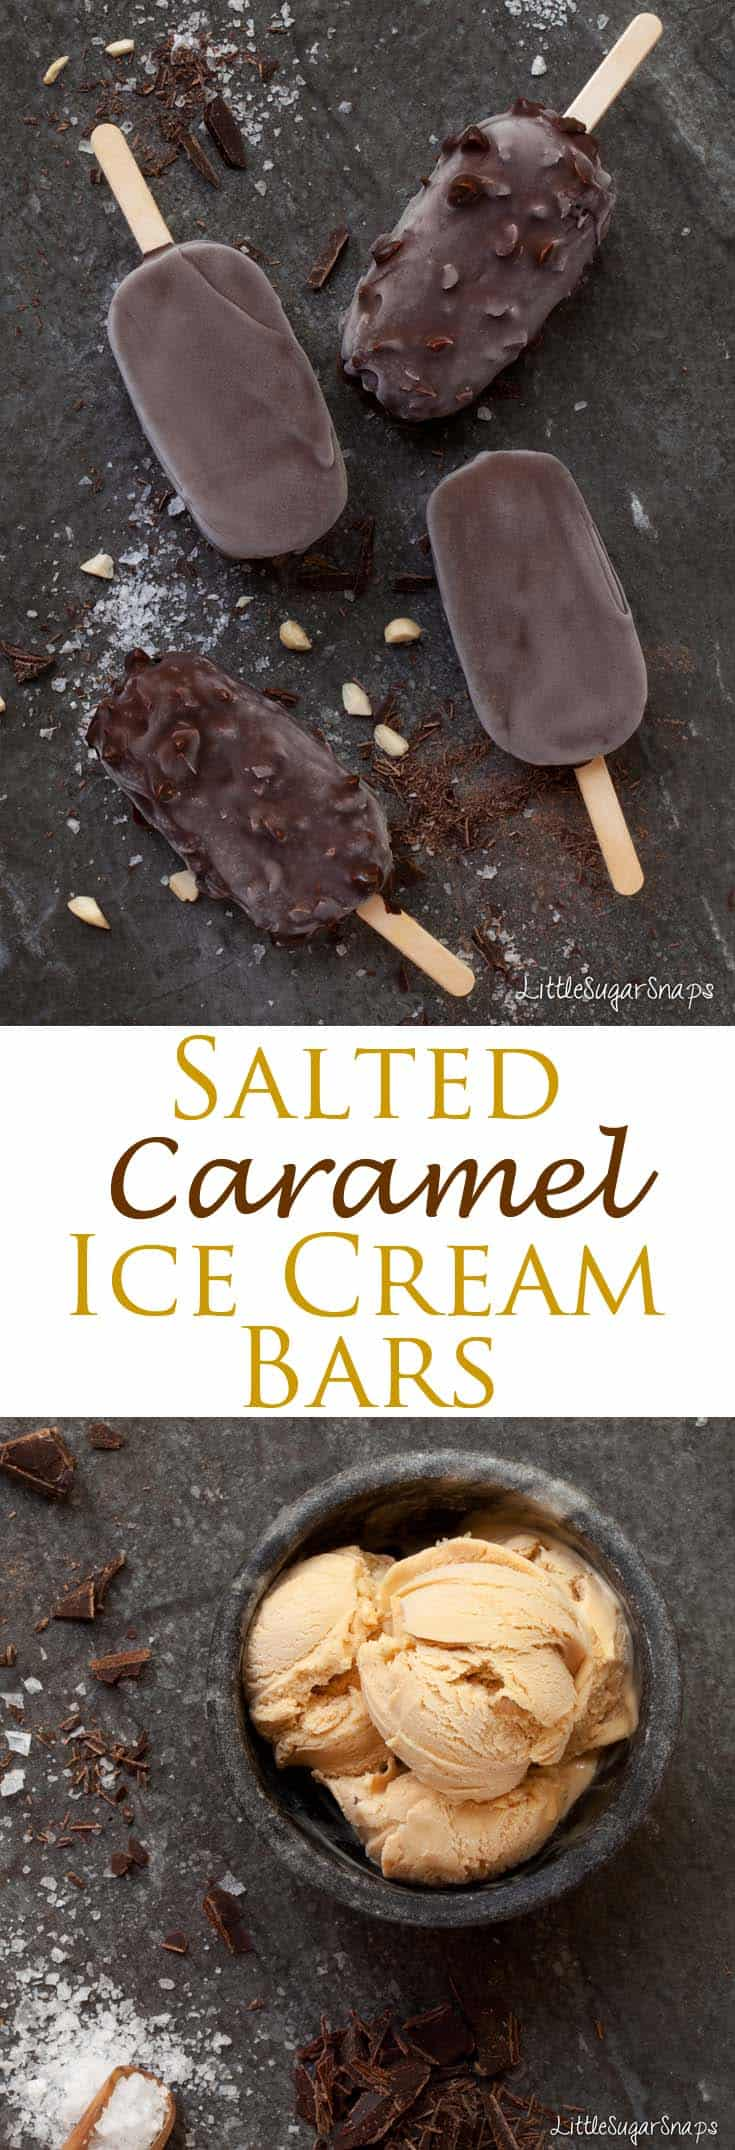 These Salted Caramel Ice Cream Bars are ultimate summer luxury – the crisp and crunchy chocolate shell hides a smooth and creamy, flavourful ice cream